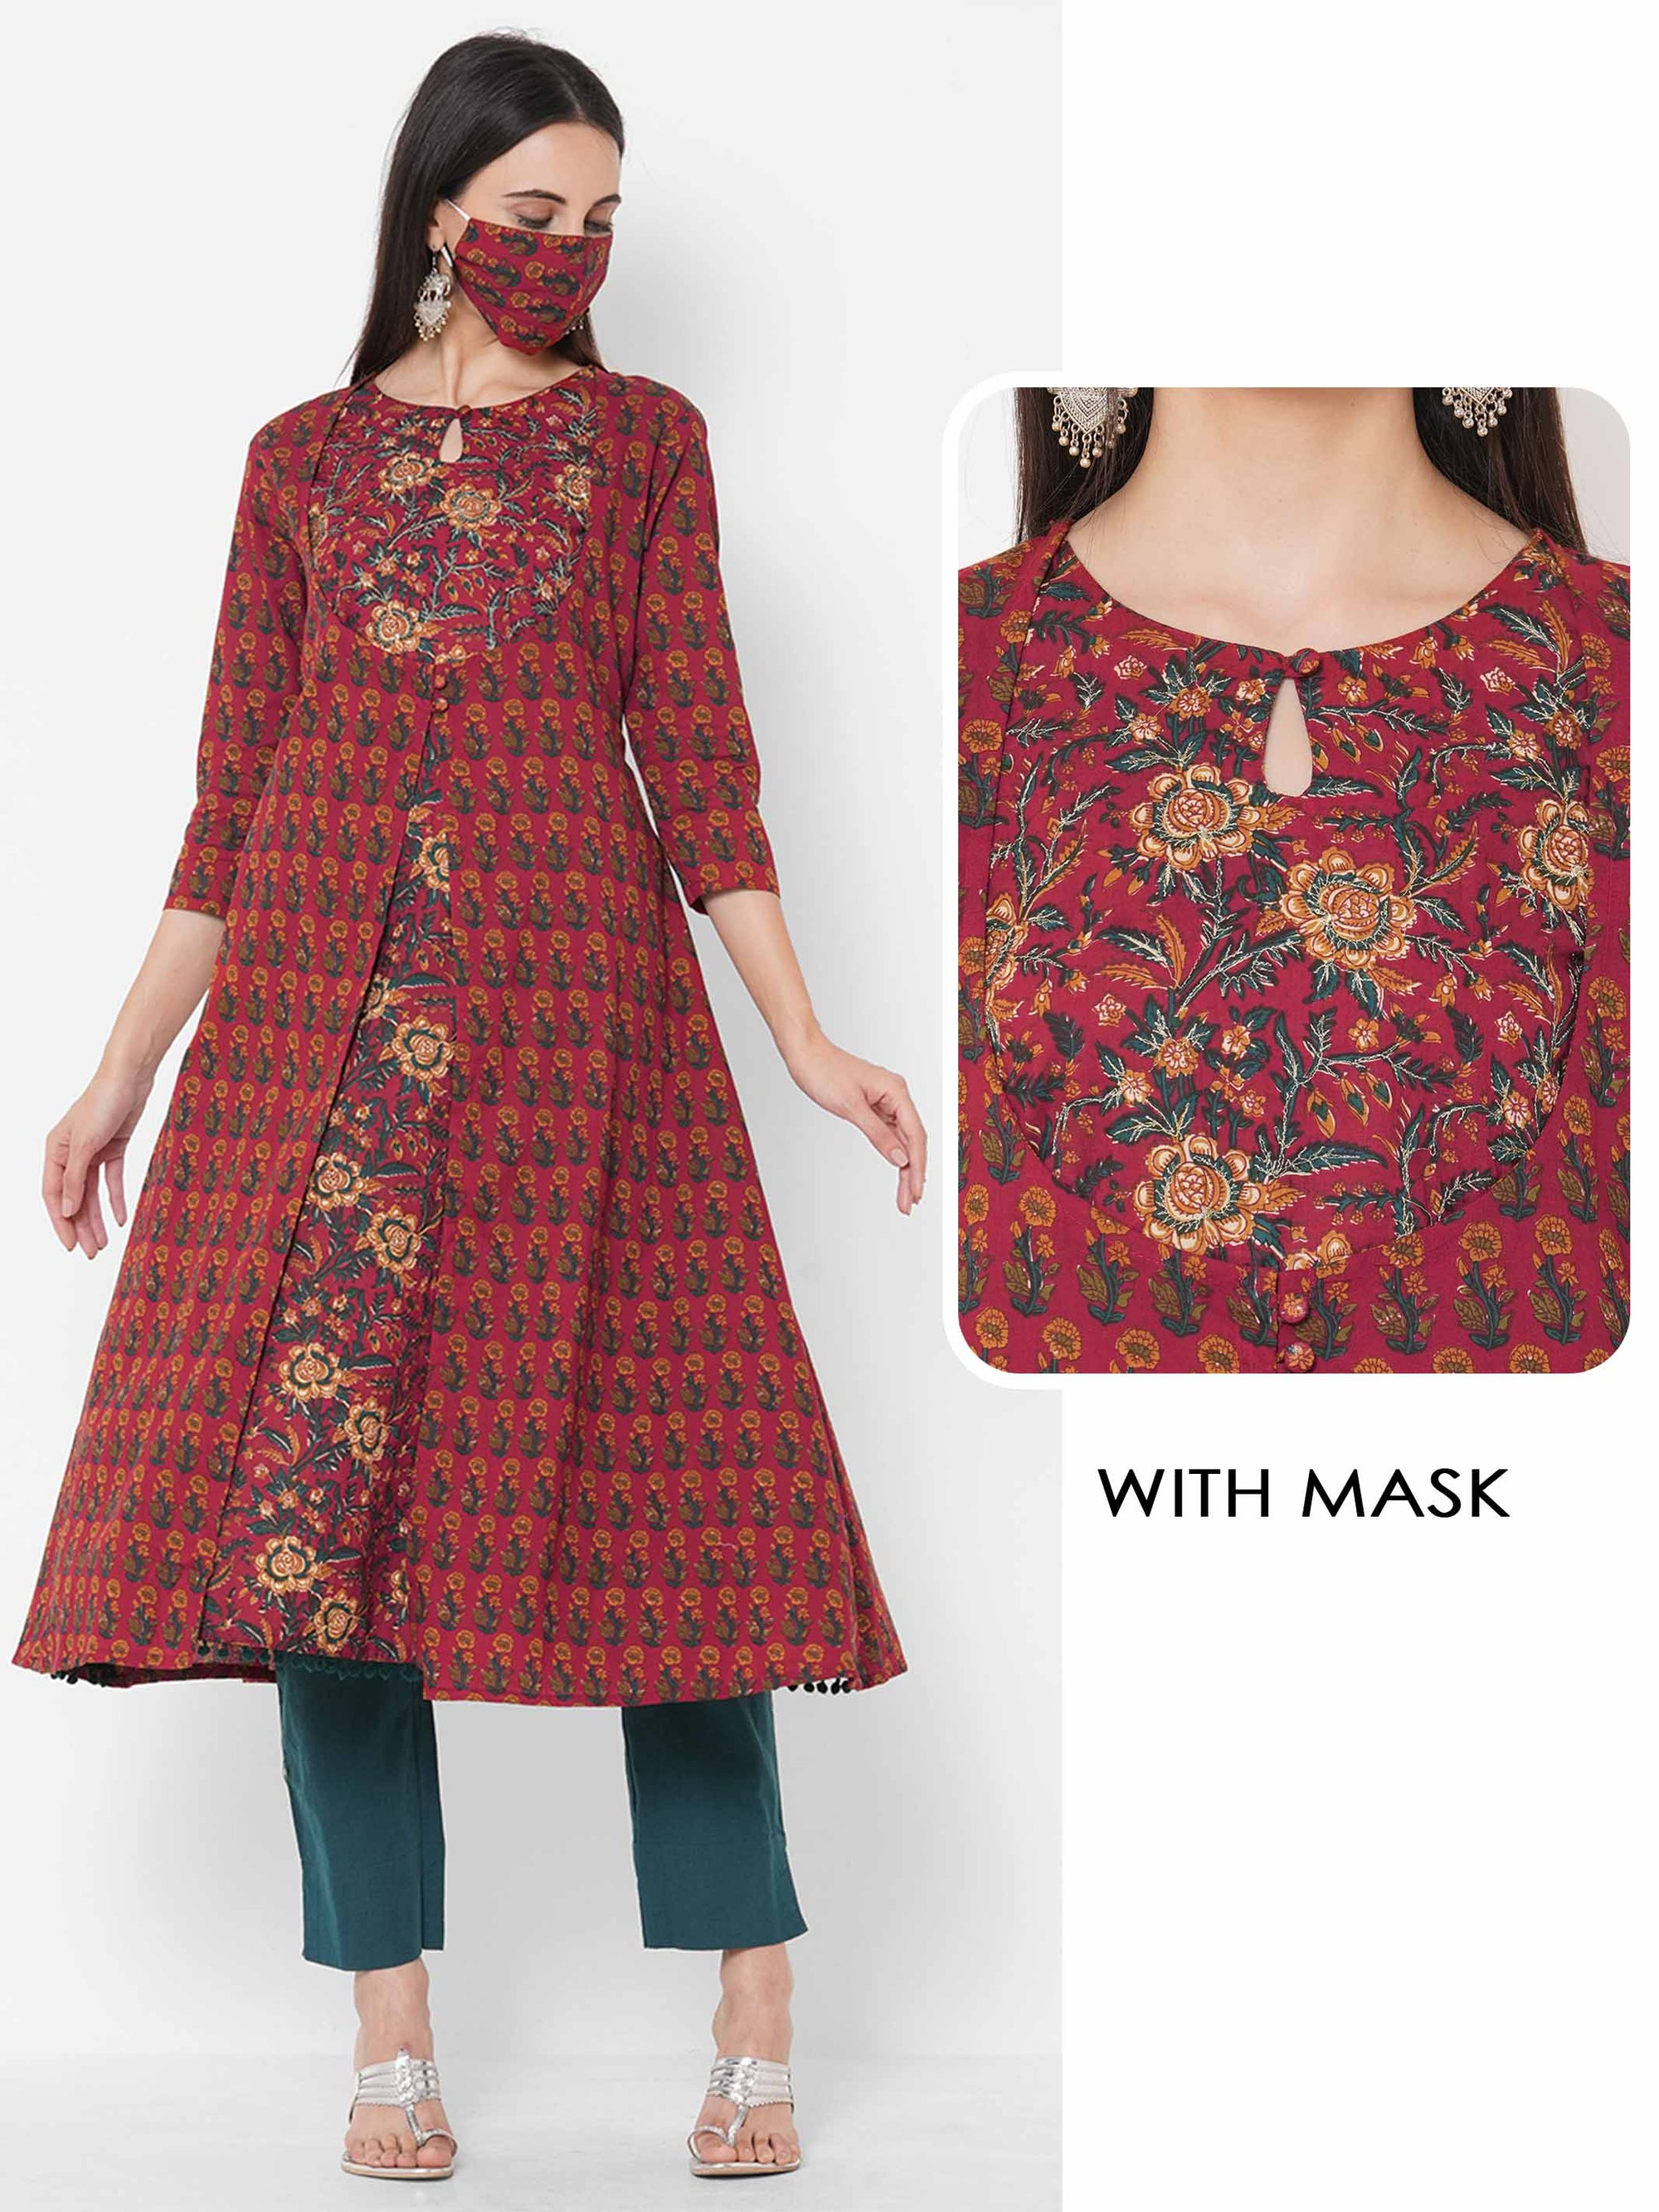 Floral Mix Printed A-line Kurta with 2-Ply Mask - Maroon